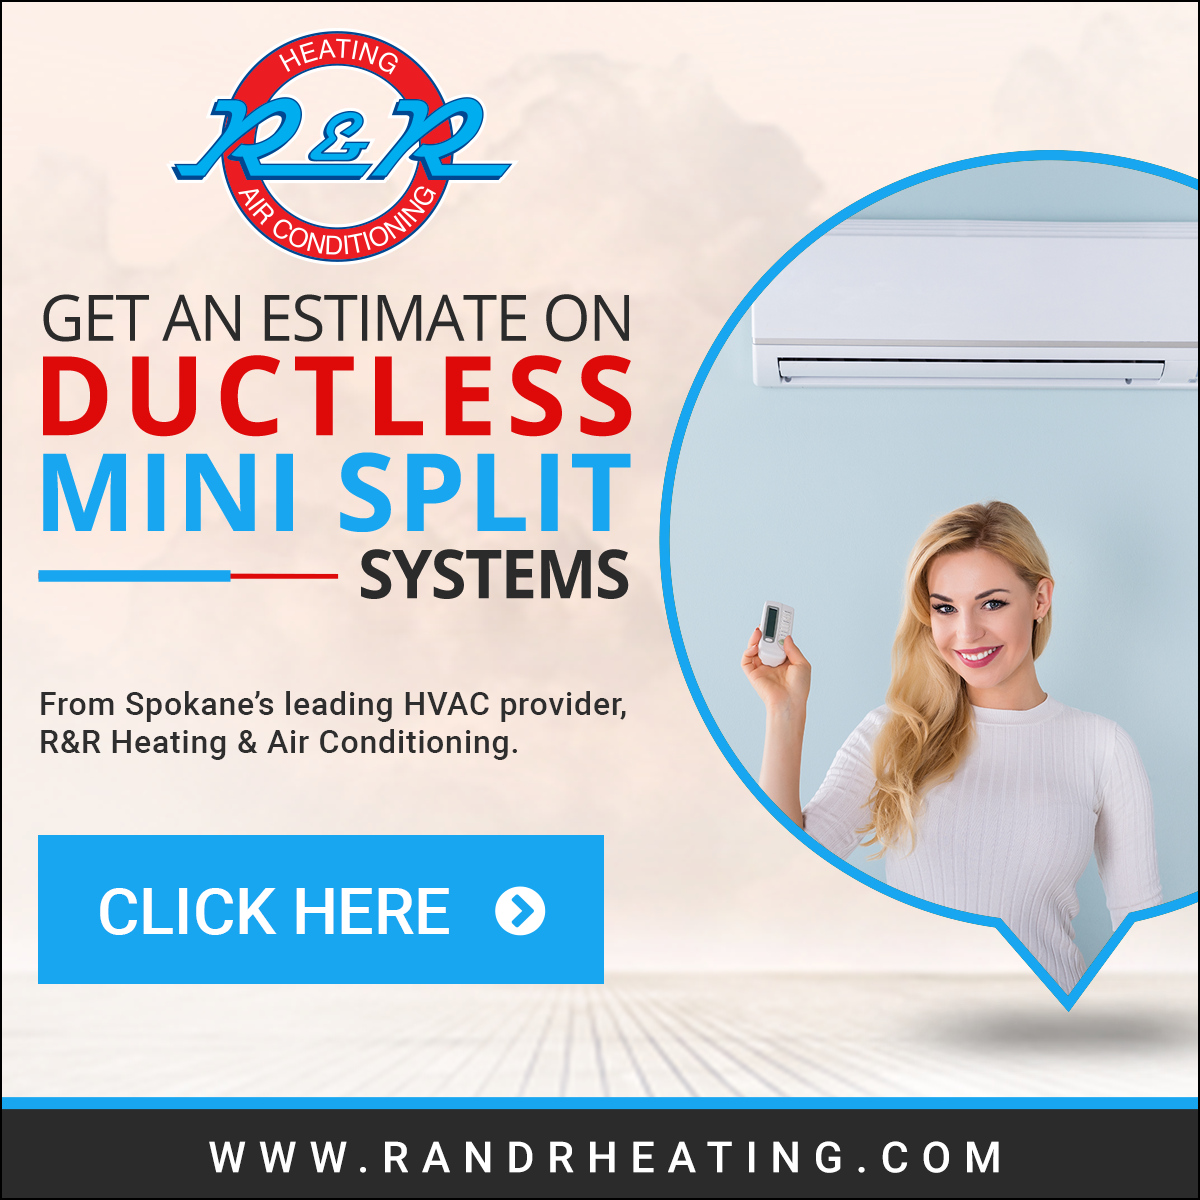 Get Setup With Ductless Mini Splits In Your Home Call R R Heating